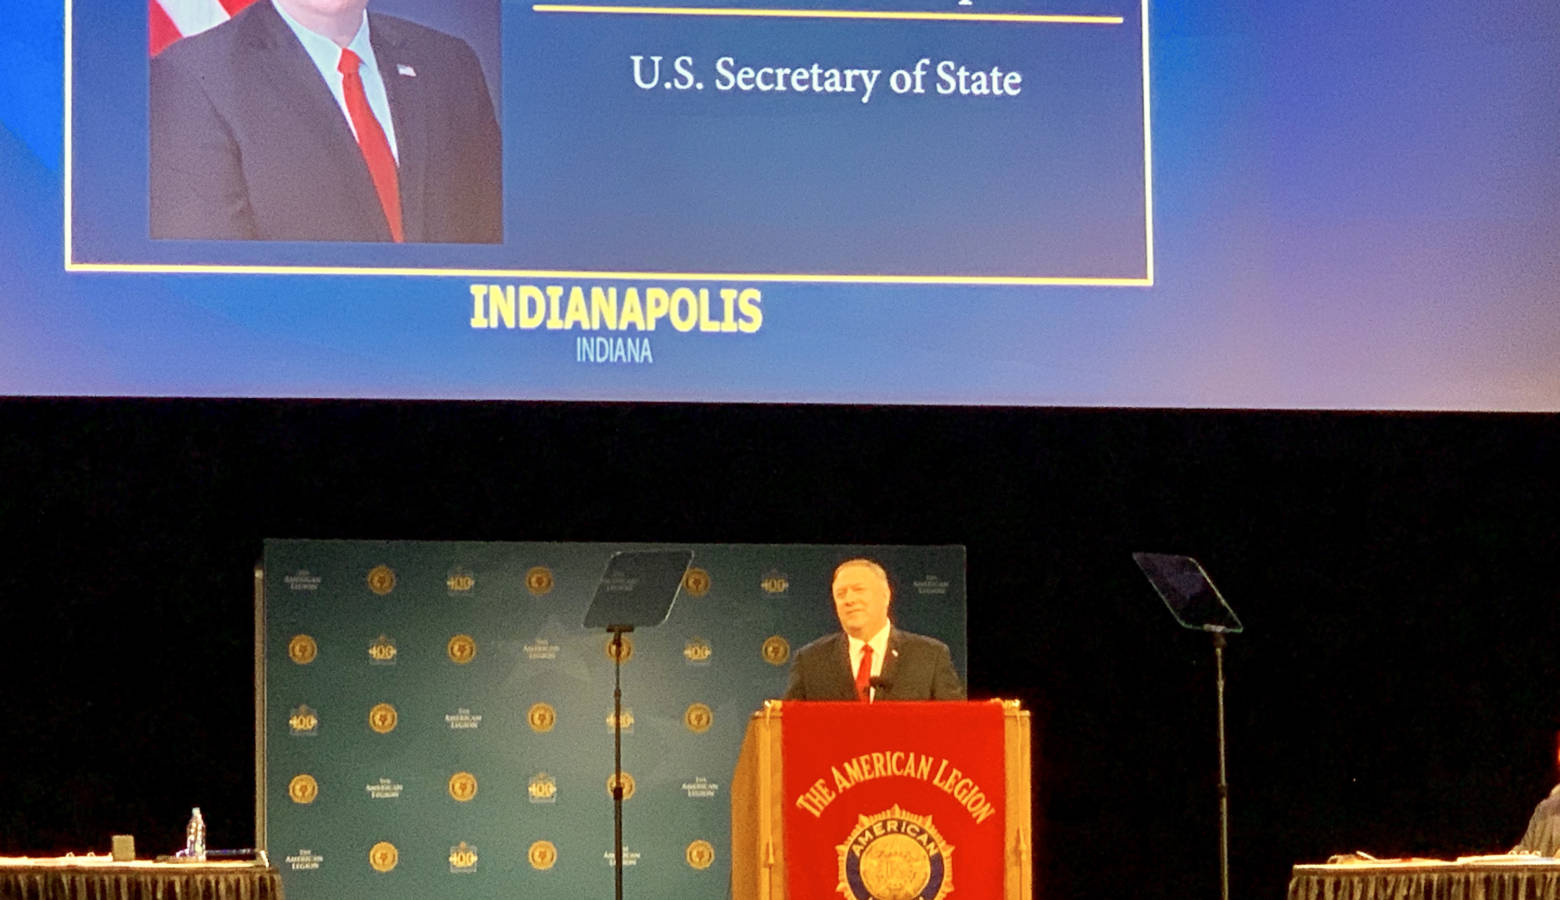 Secretary of State Mike Pompeo addresses the American Legion national convention in Indianapolis. (Brandon Smith/IPB News)